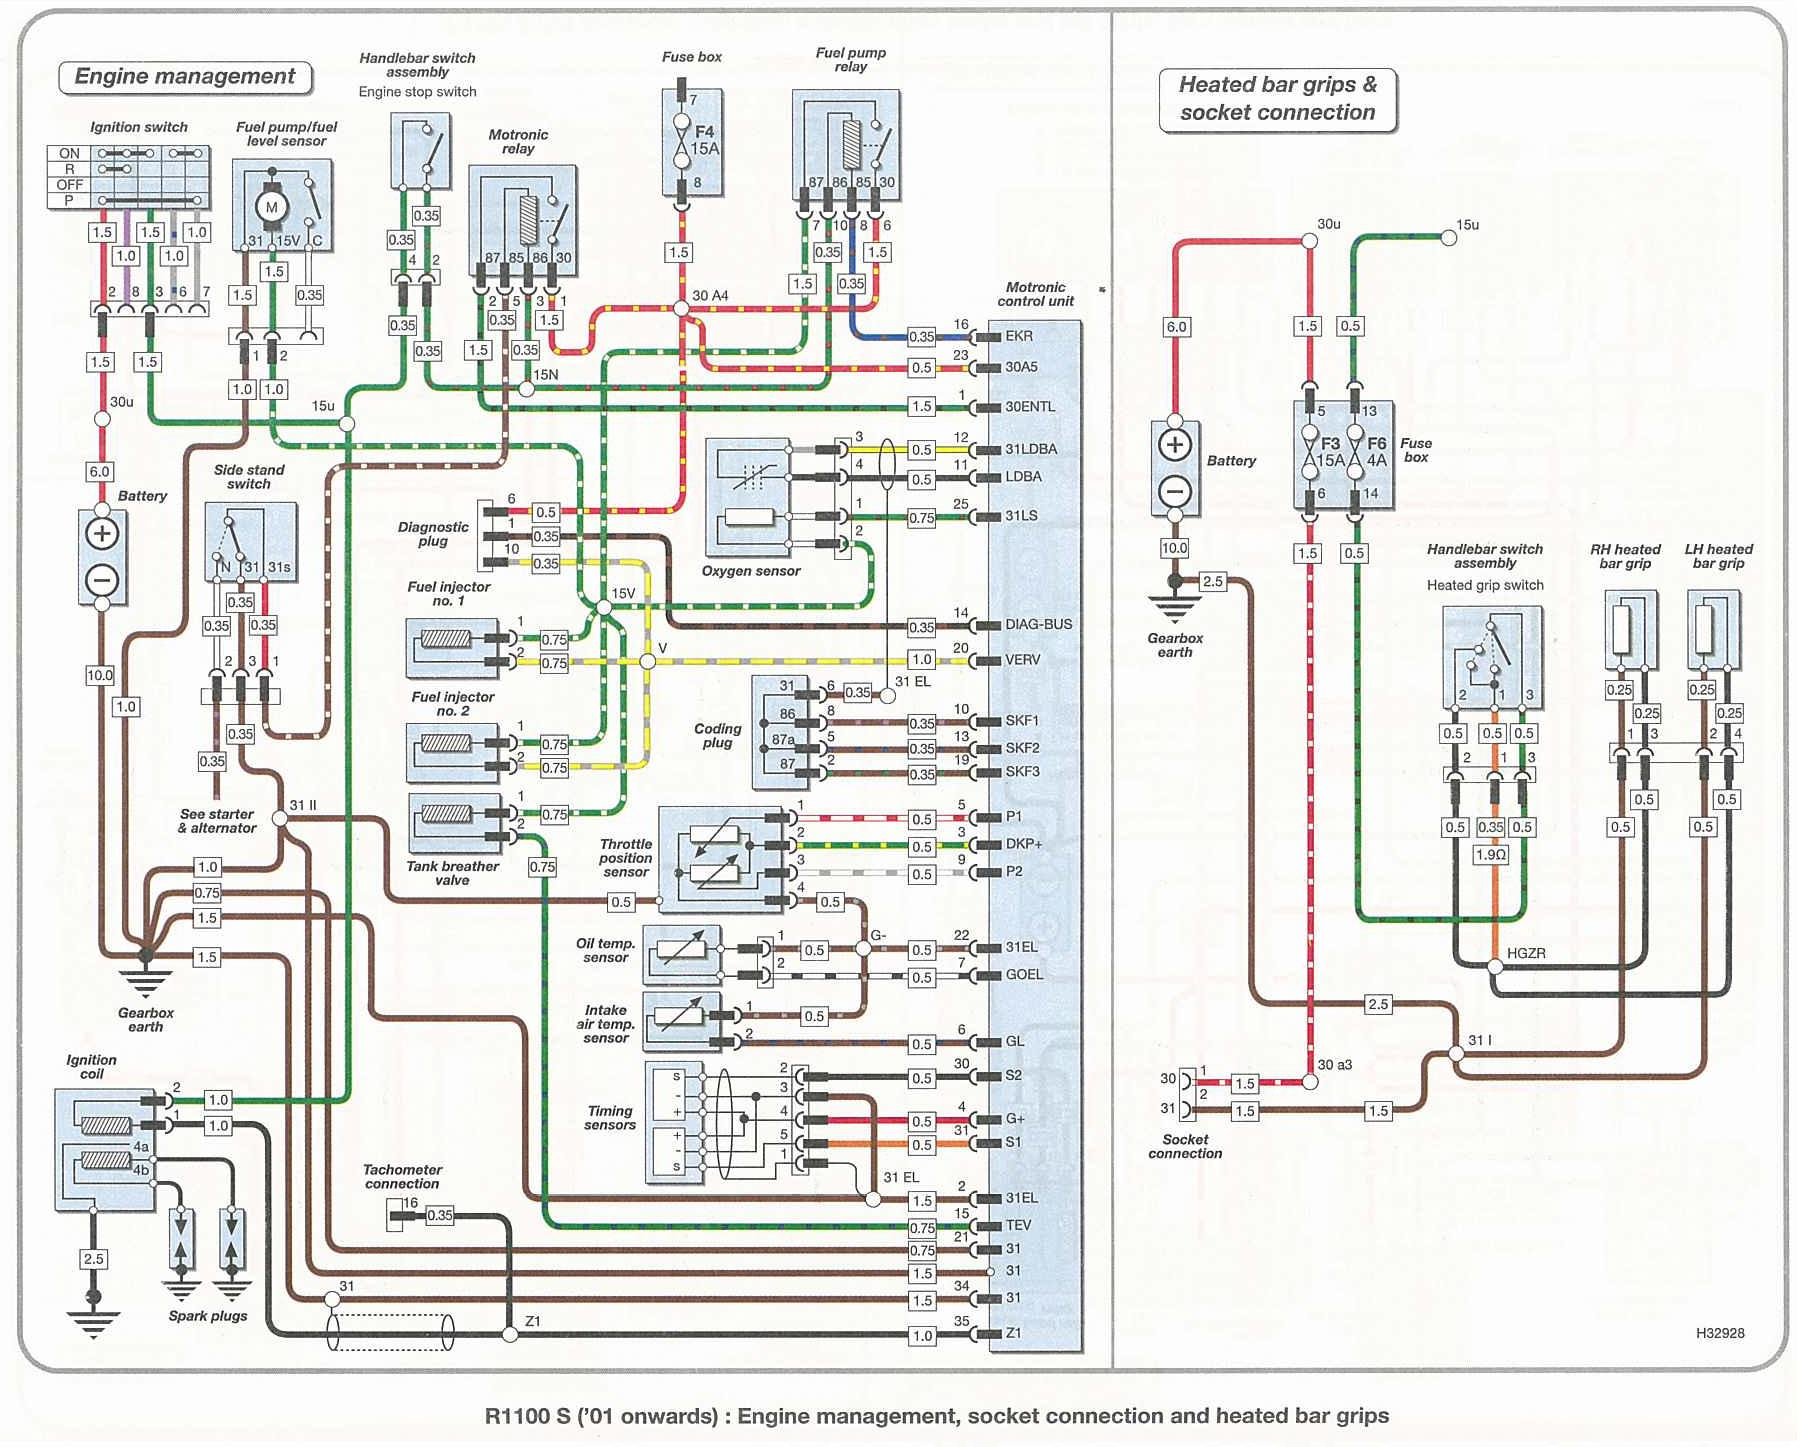 bmw r1100s wiring diagram bmw wiring diagrams online bmw r1100s wiring diagrams